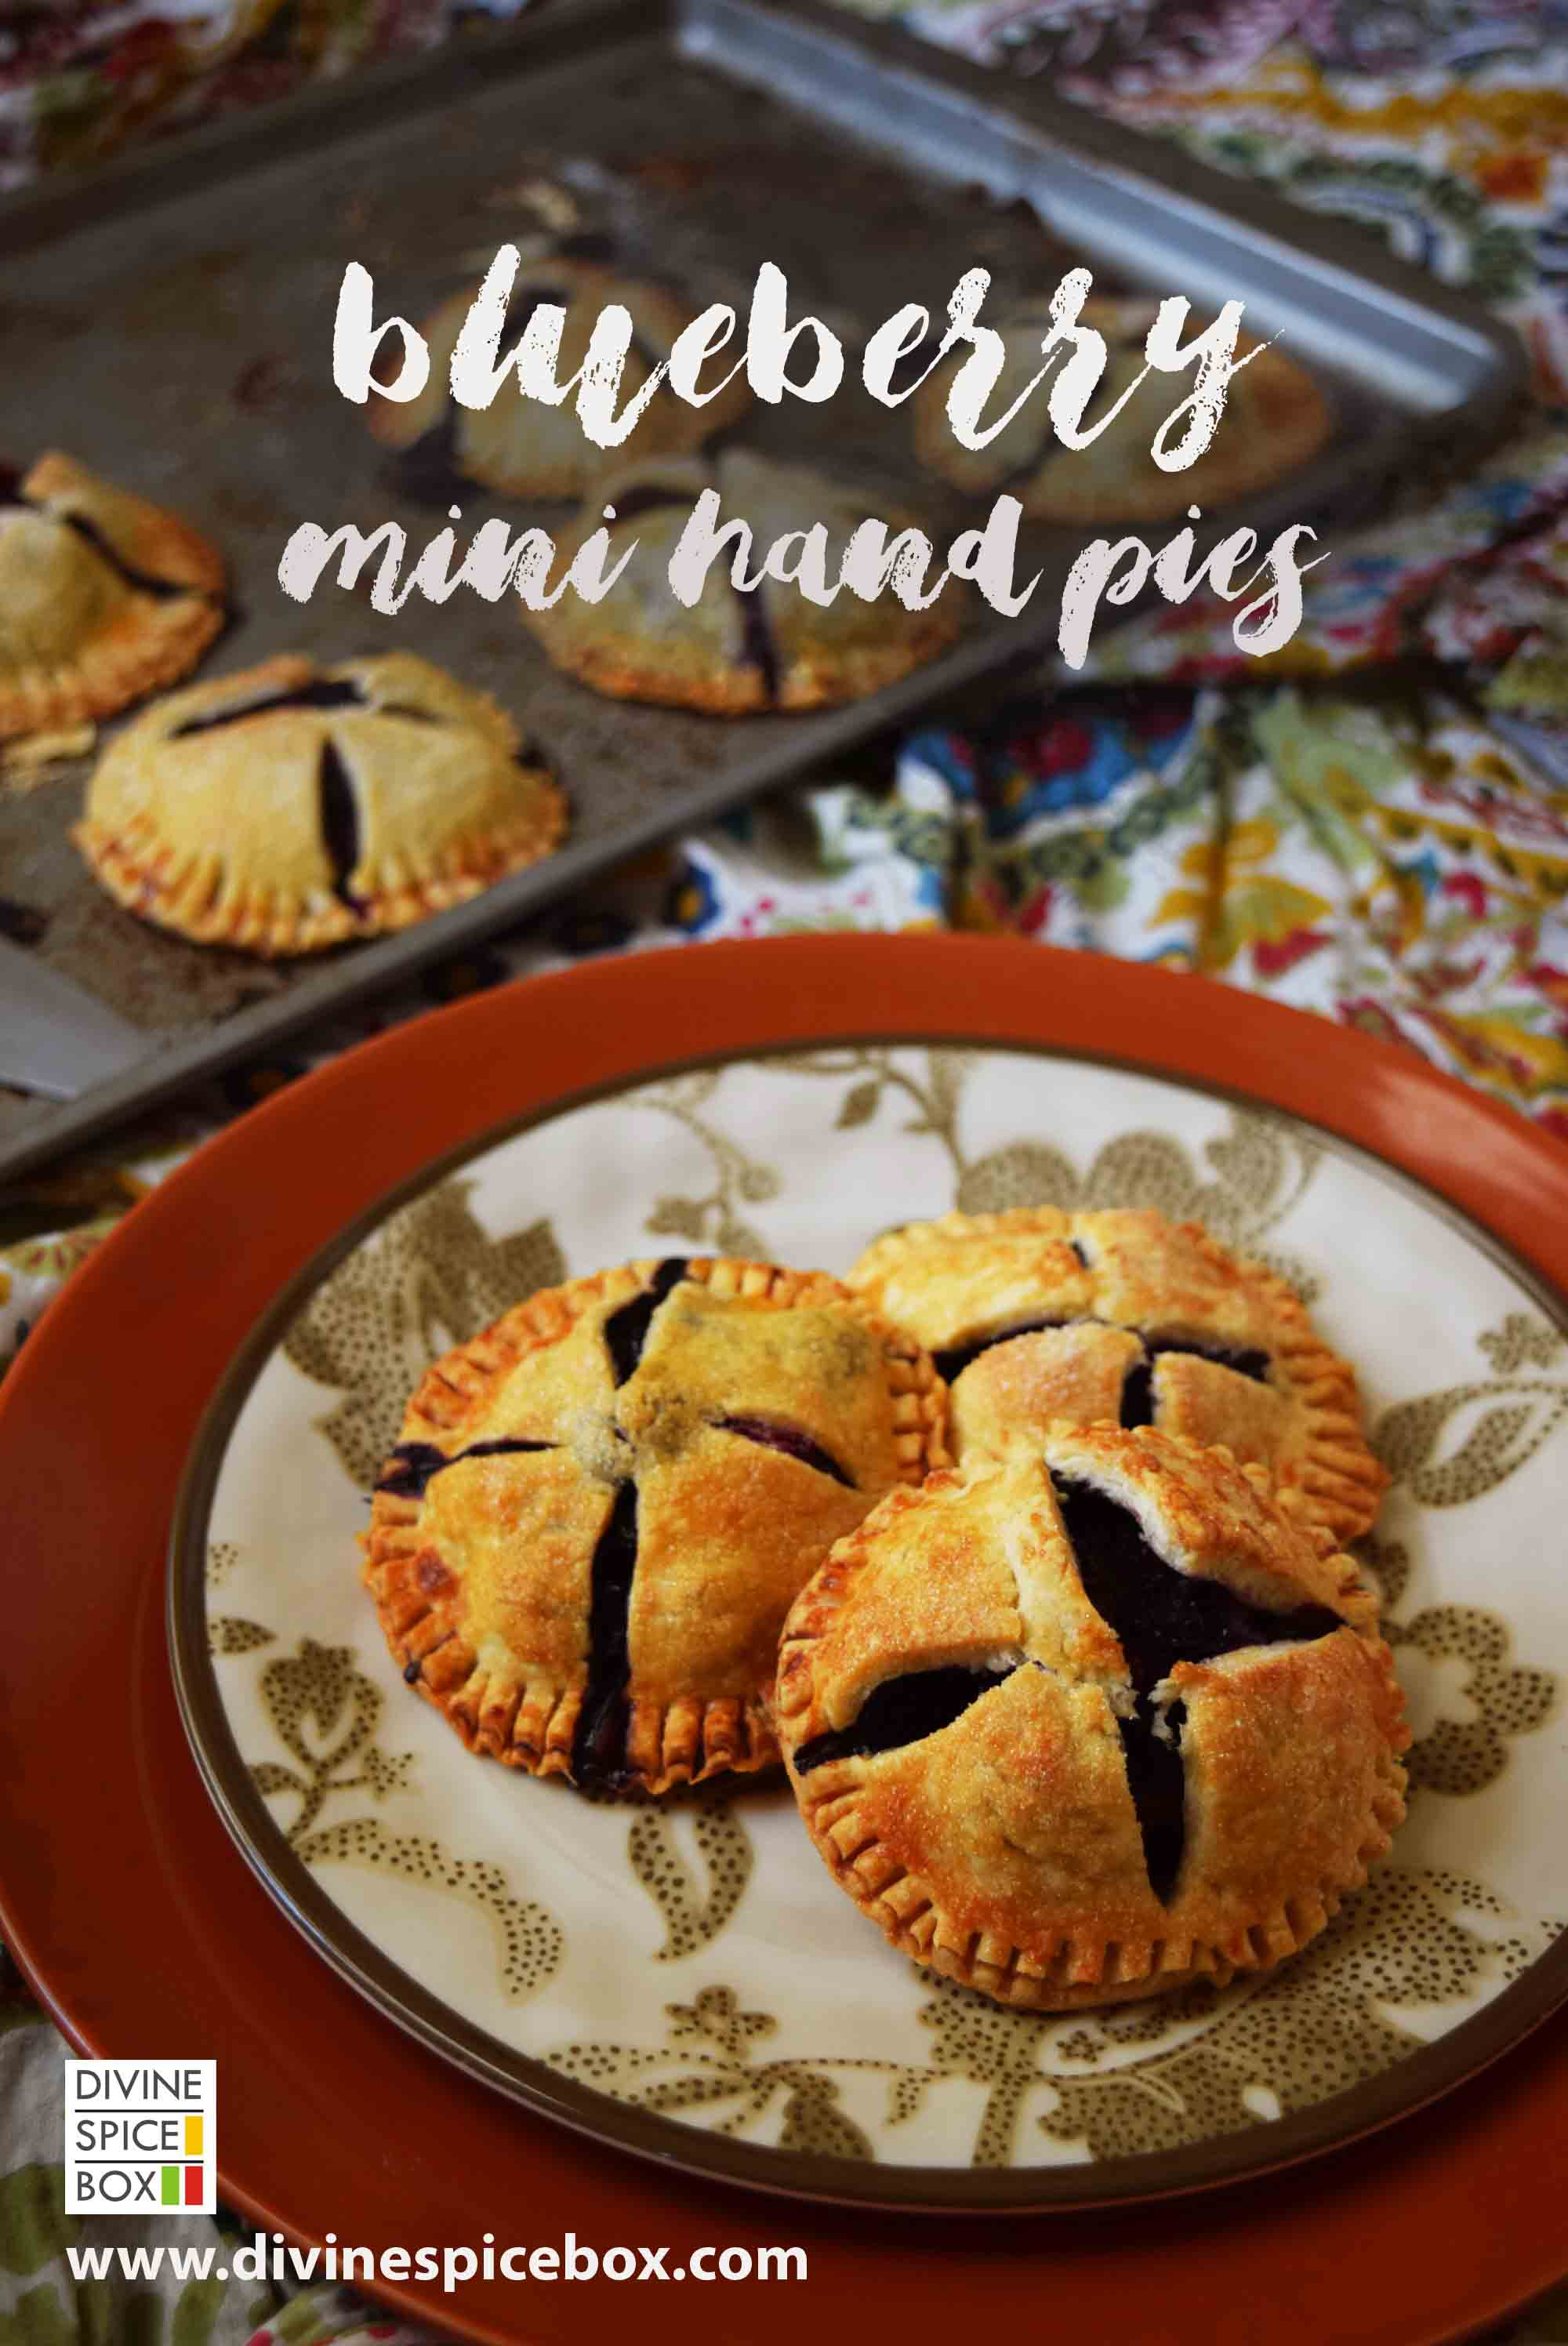 blueberry-hand-pies-copy